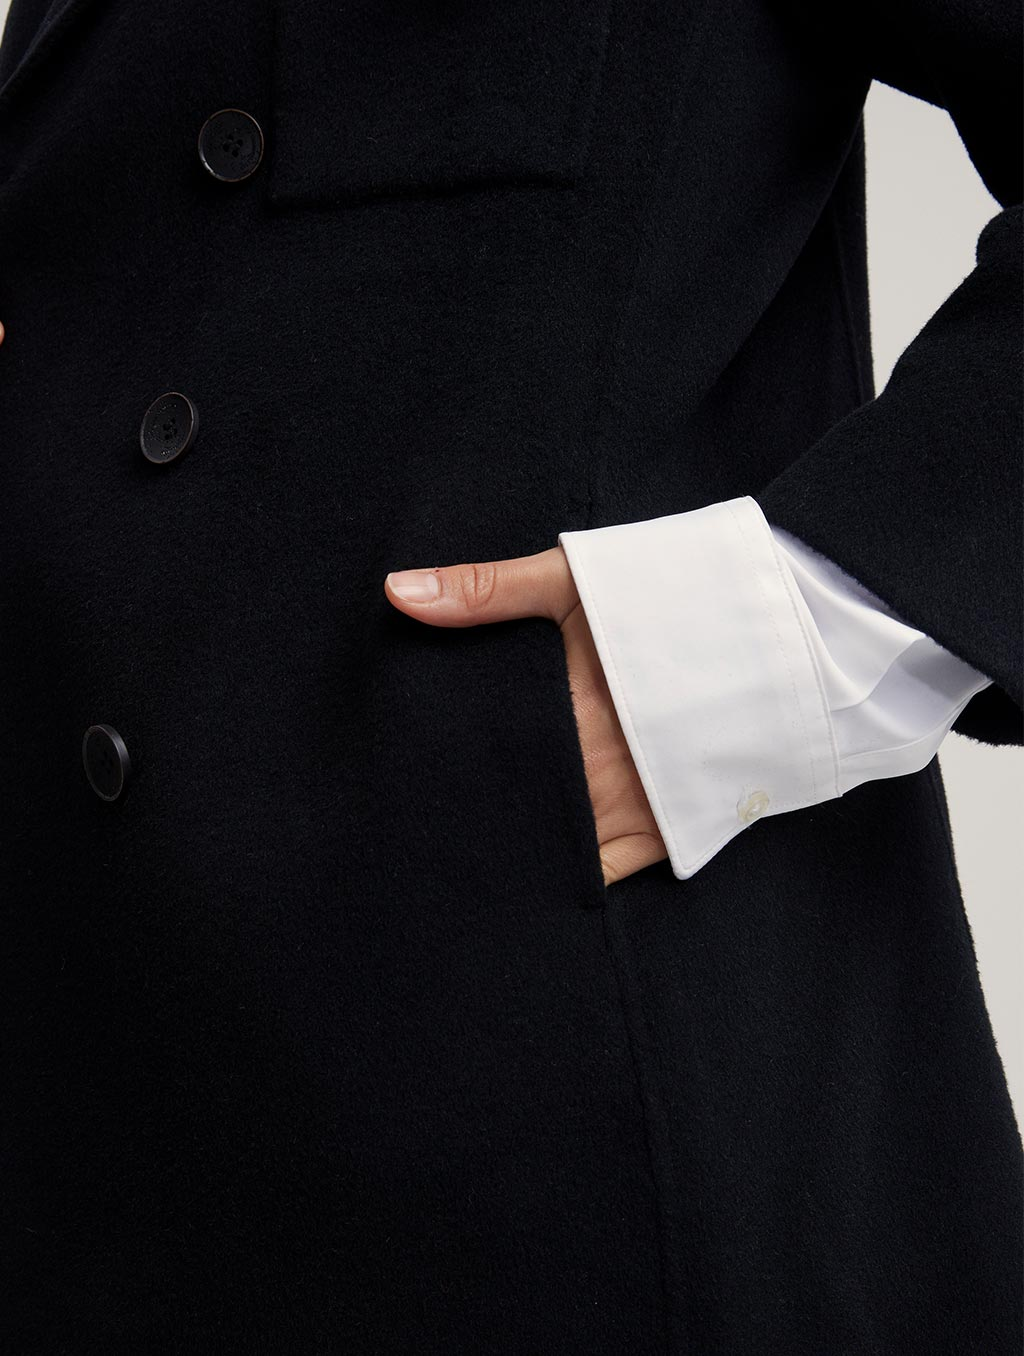 Waisted 100% Camel Hair Coat With Badge-detail2-black